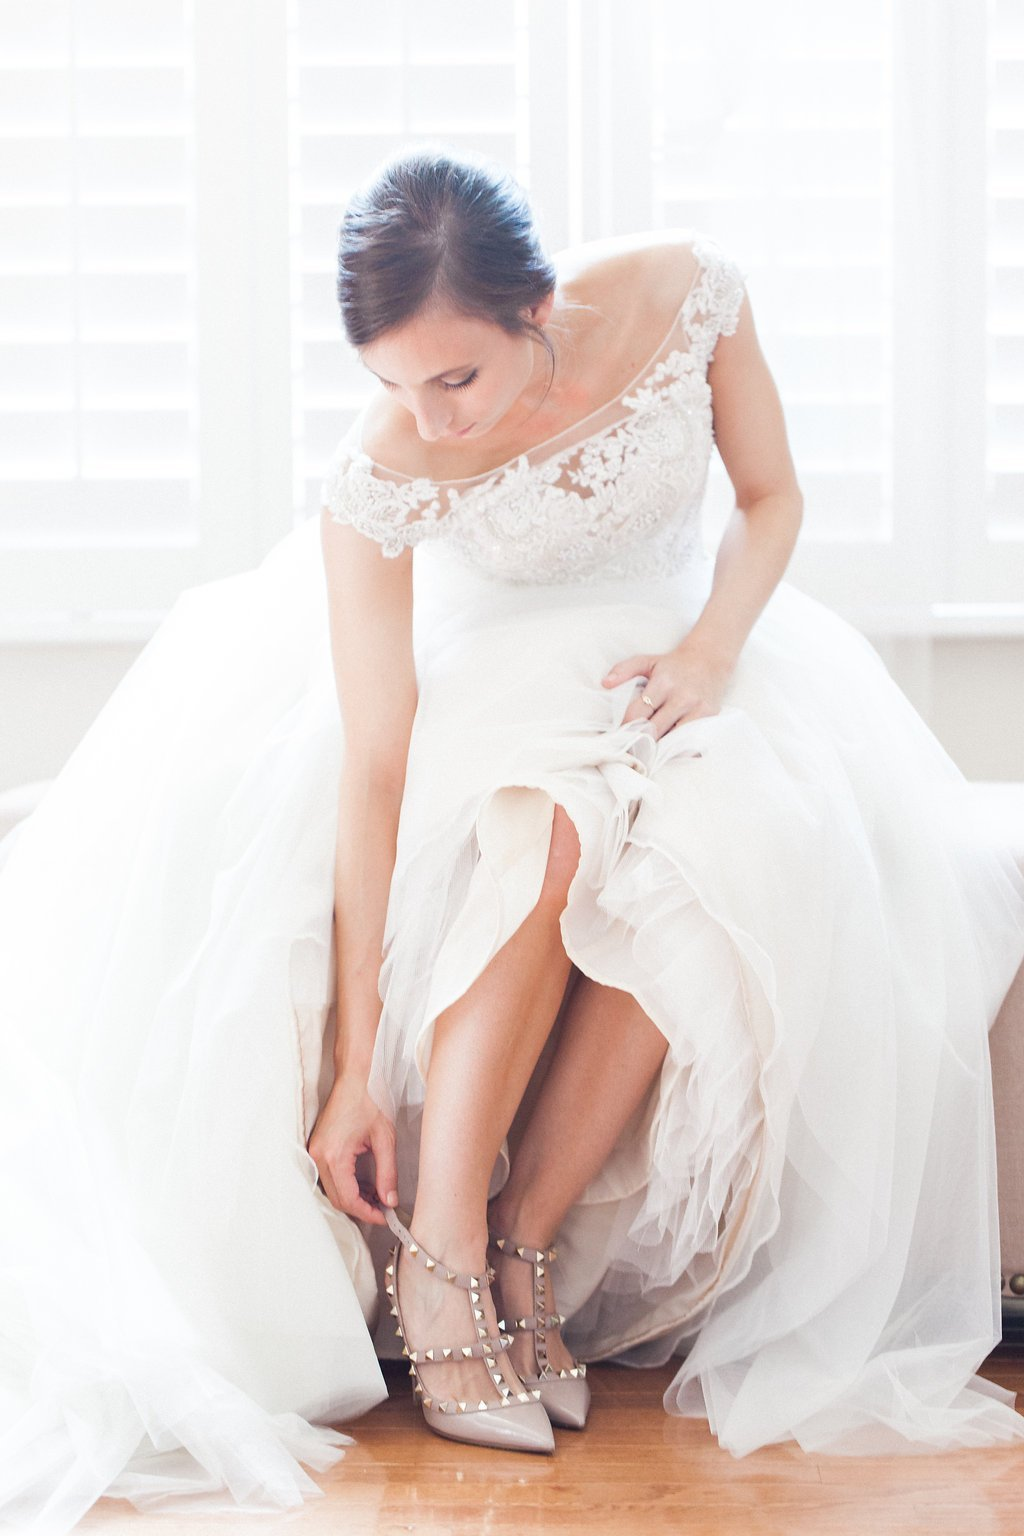 Bride putting on her Valentino Rockstud shoes while getting ready before her wedding